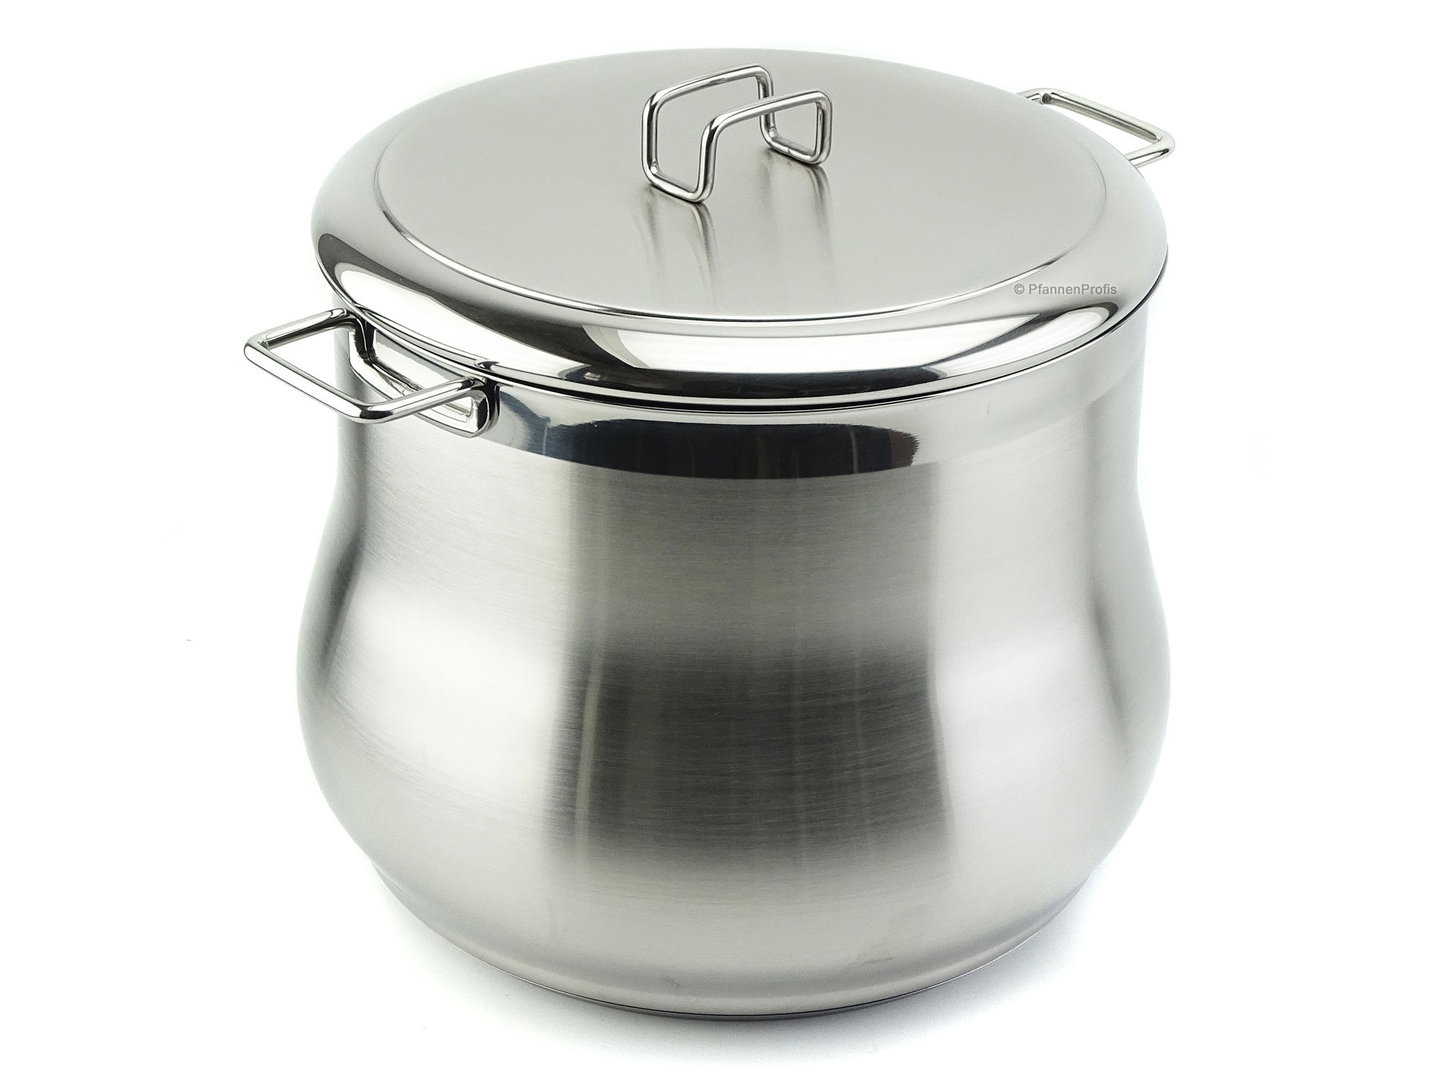 BARAZZONI stockpot TUMMY stainless steel 26 cm with lid 11.5 L